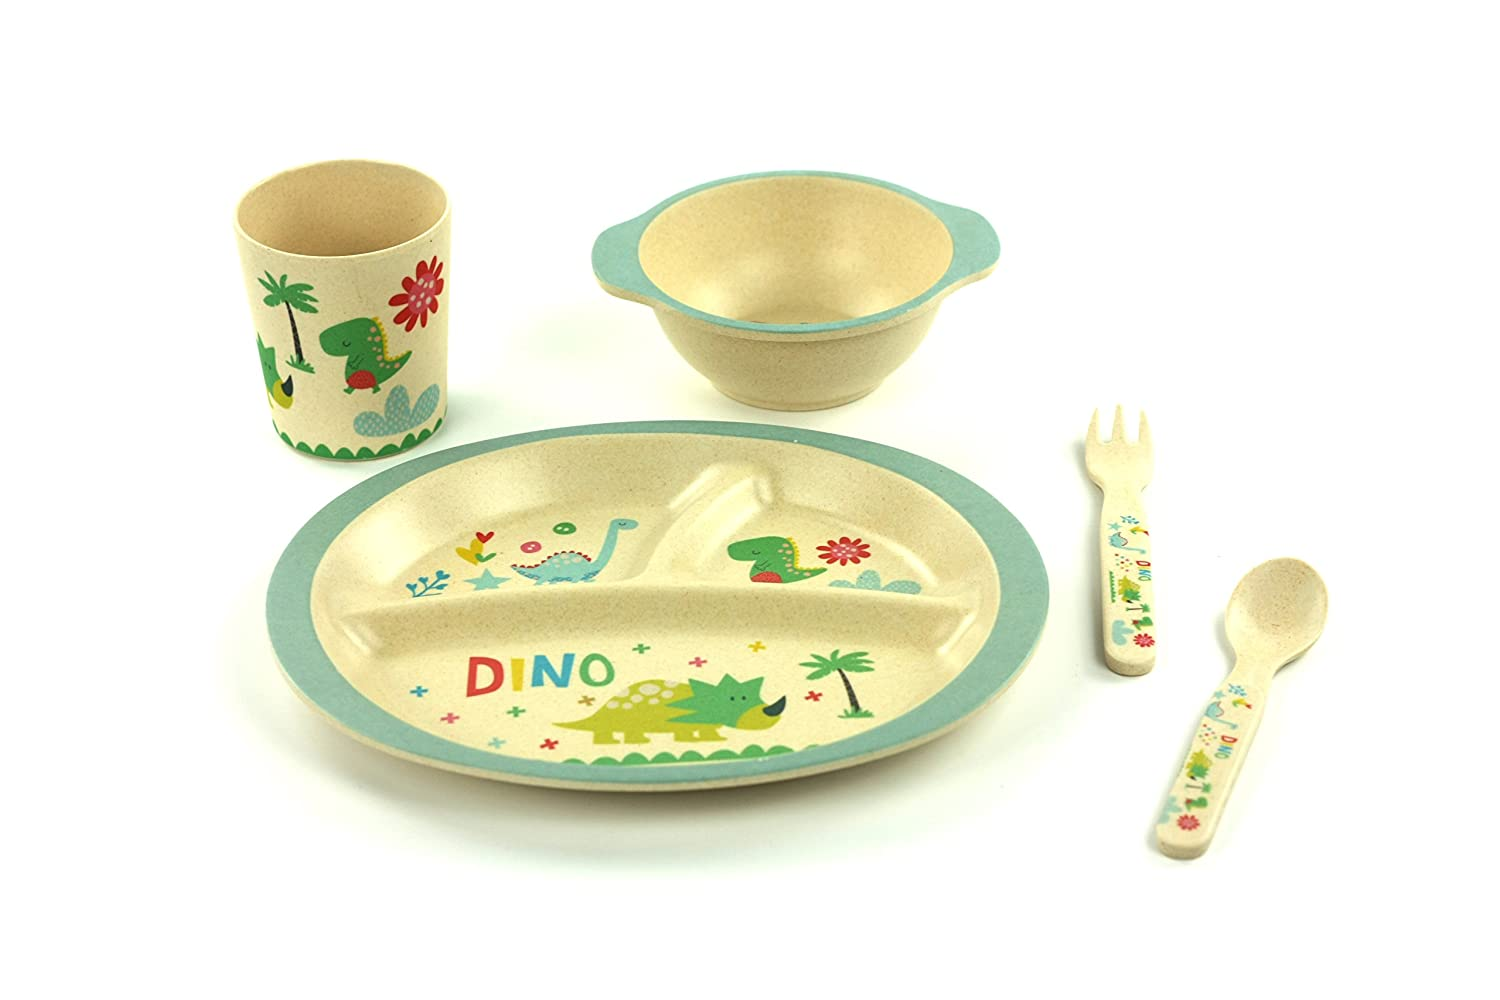 Amazon.com  Kids Dinnerware Set of 5 Piece - Toddler Bamboo Bowl Children Plate Cup Toddler Fork u0026 Spoon BPA Free Dinosaur Plates for Baby Shower Gift ...  sc 1 st  Amazon.com : dinosaur dinnerware - pezcame.com